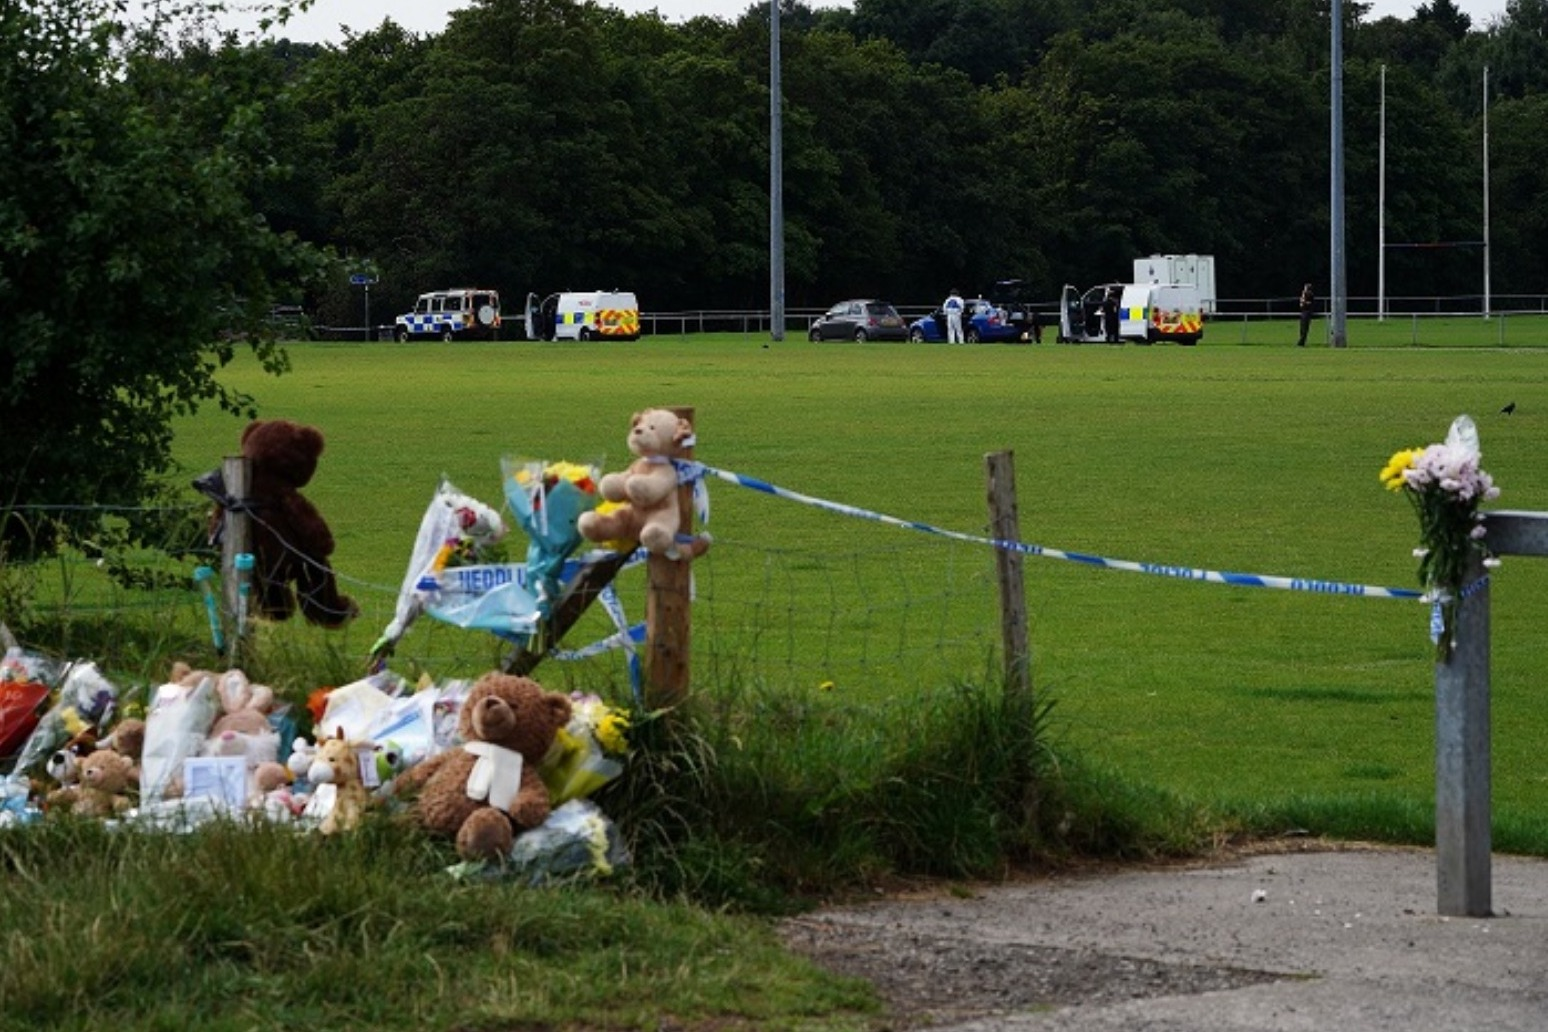 Two adults and a teenager charged over death of 5 year old boy in South Wales